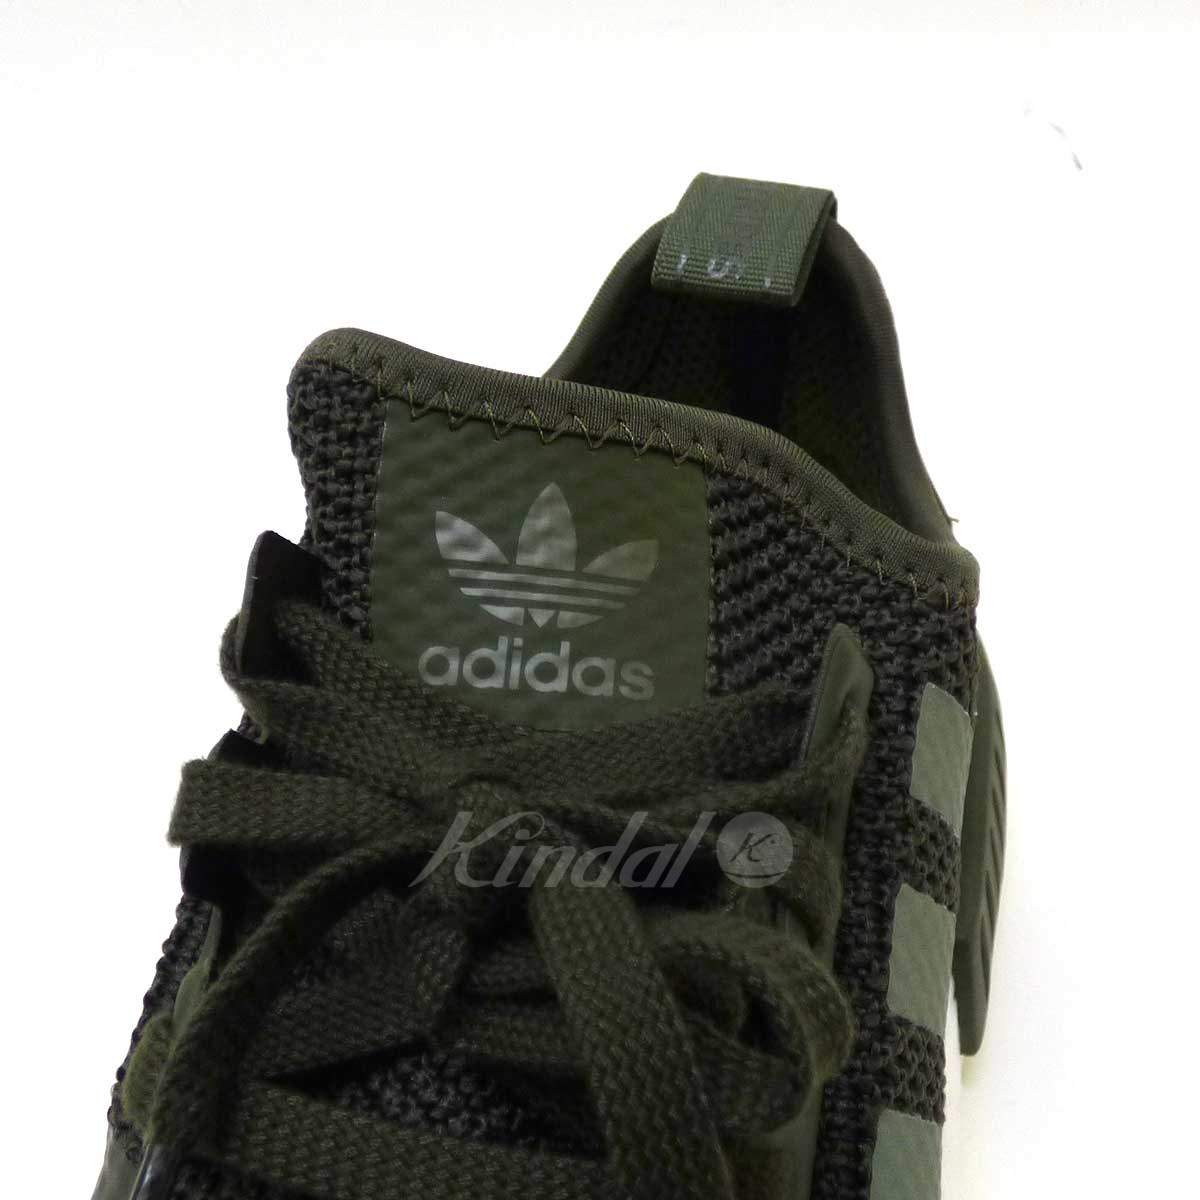 77008e35f kindal  adidas NMD R1 knight cargo sneakers